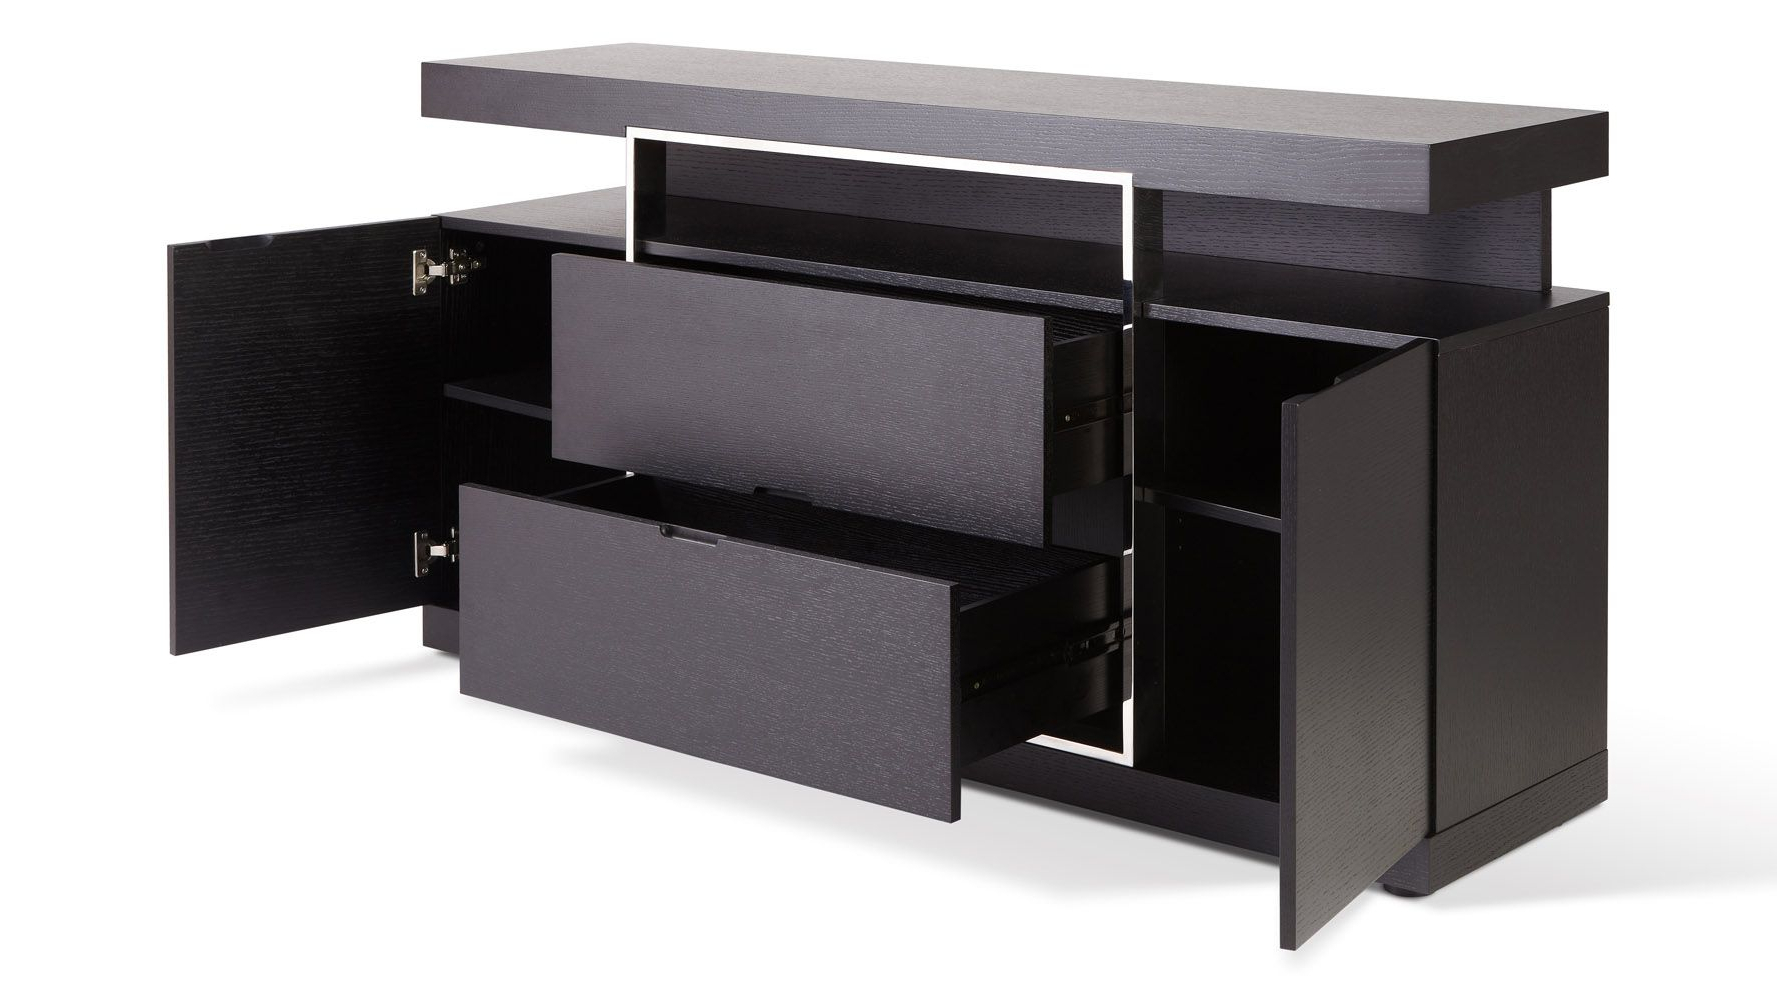 Norah Buffet | Tables | Furniture, Buffet, Office Furniture In Modern Espresso Storage Buffets (View 19 of 20)